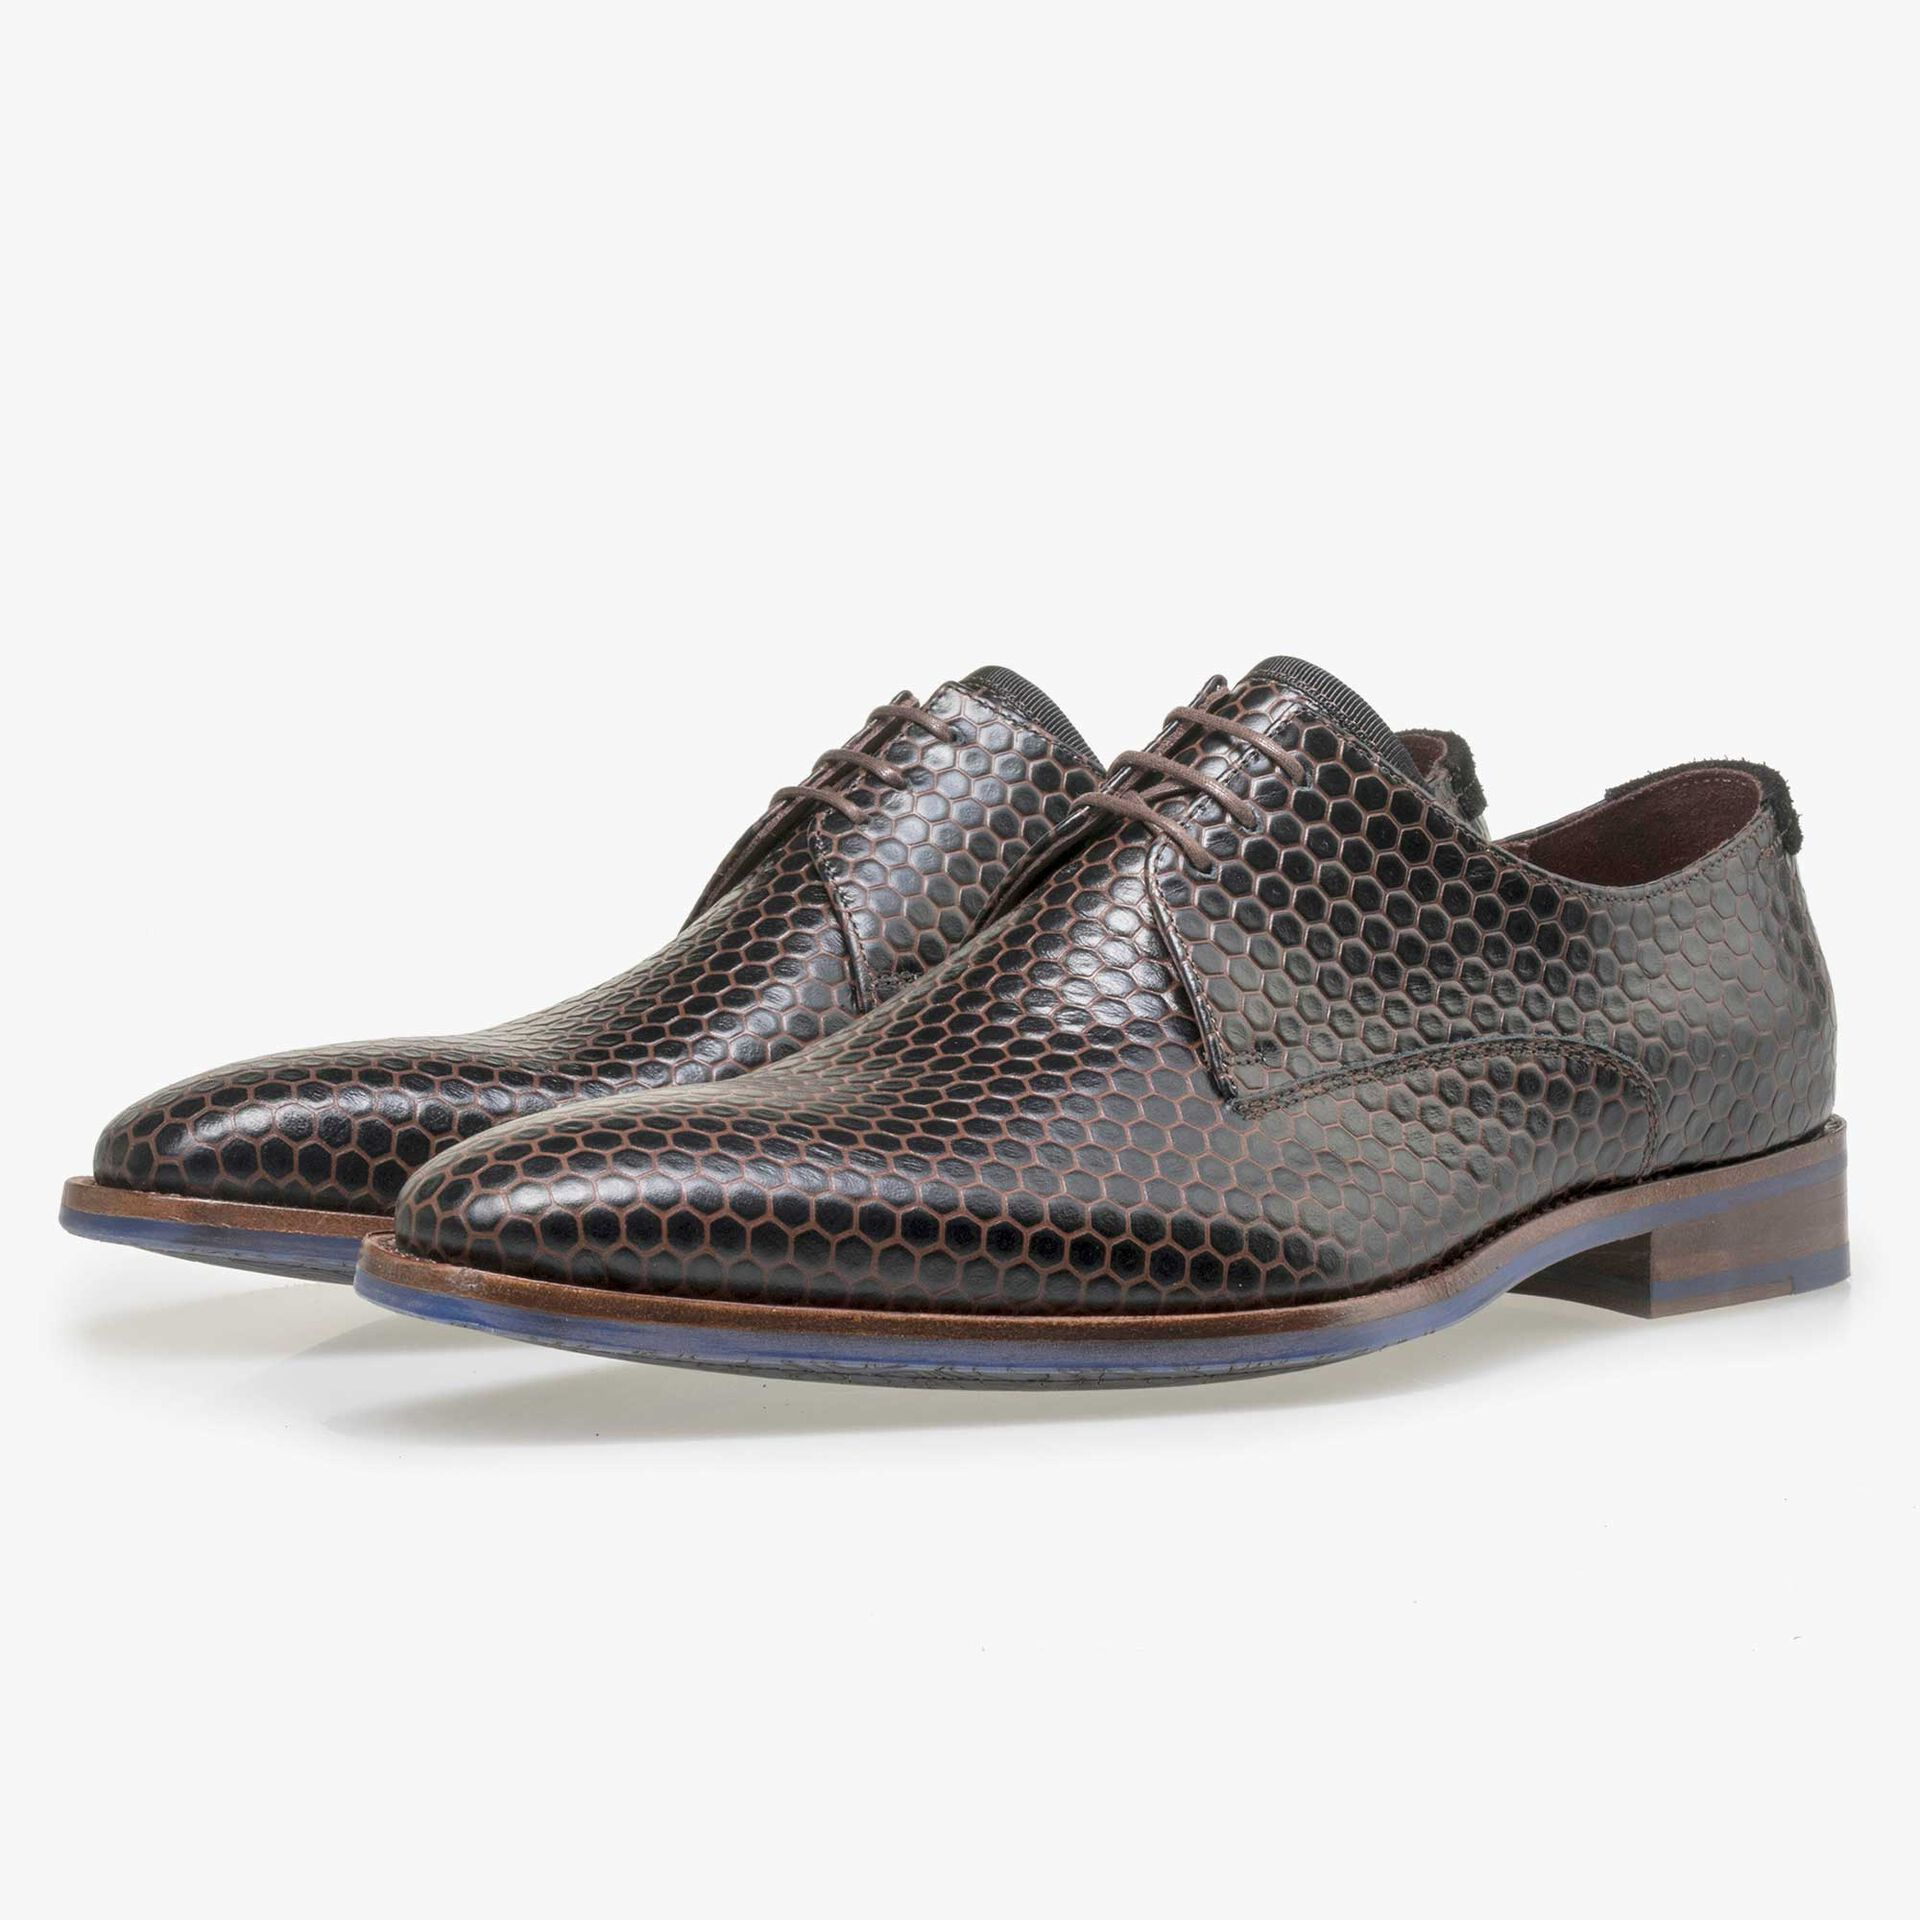 Floris van Bommel black calf's leather lace shoe finished with brown hexagon print